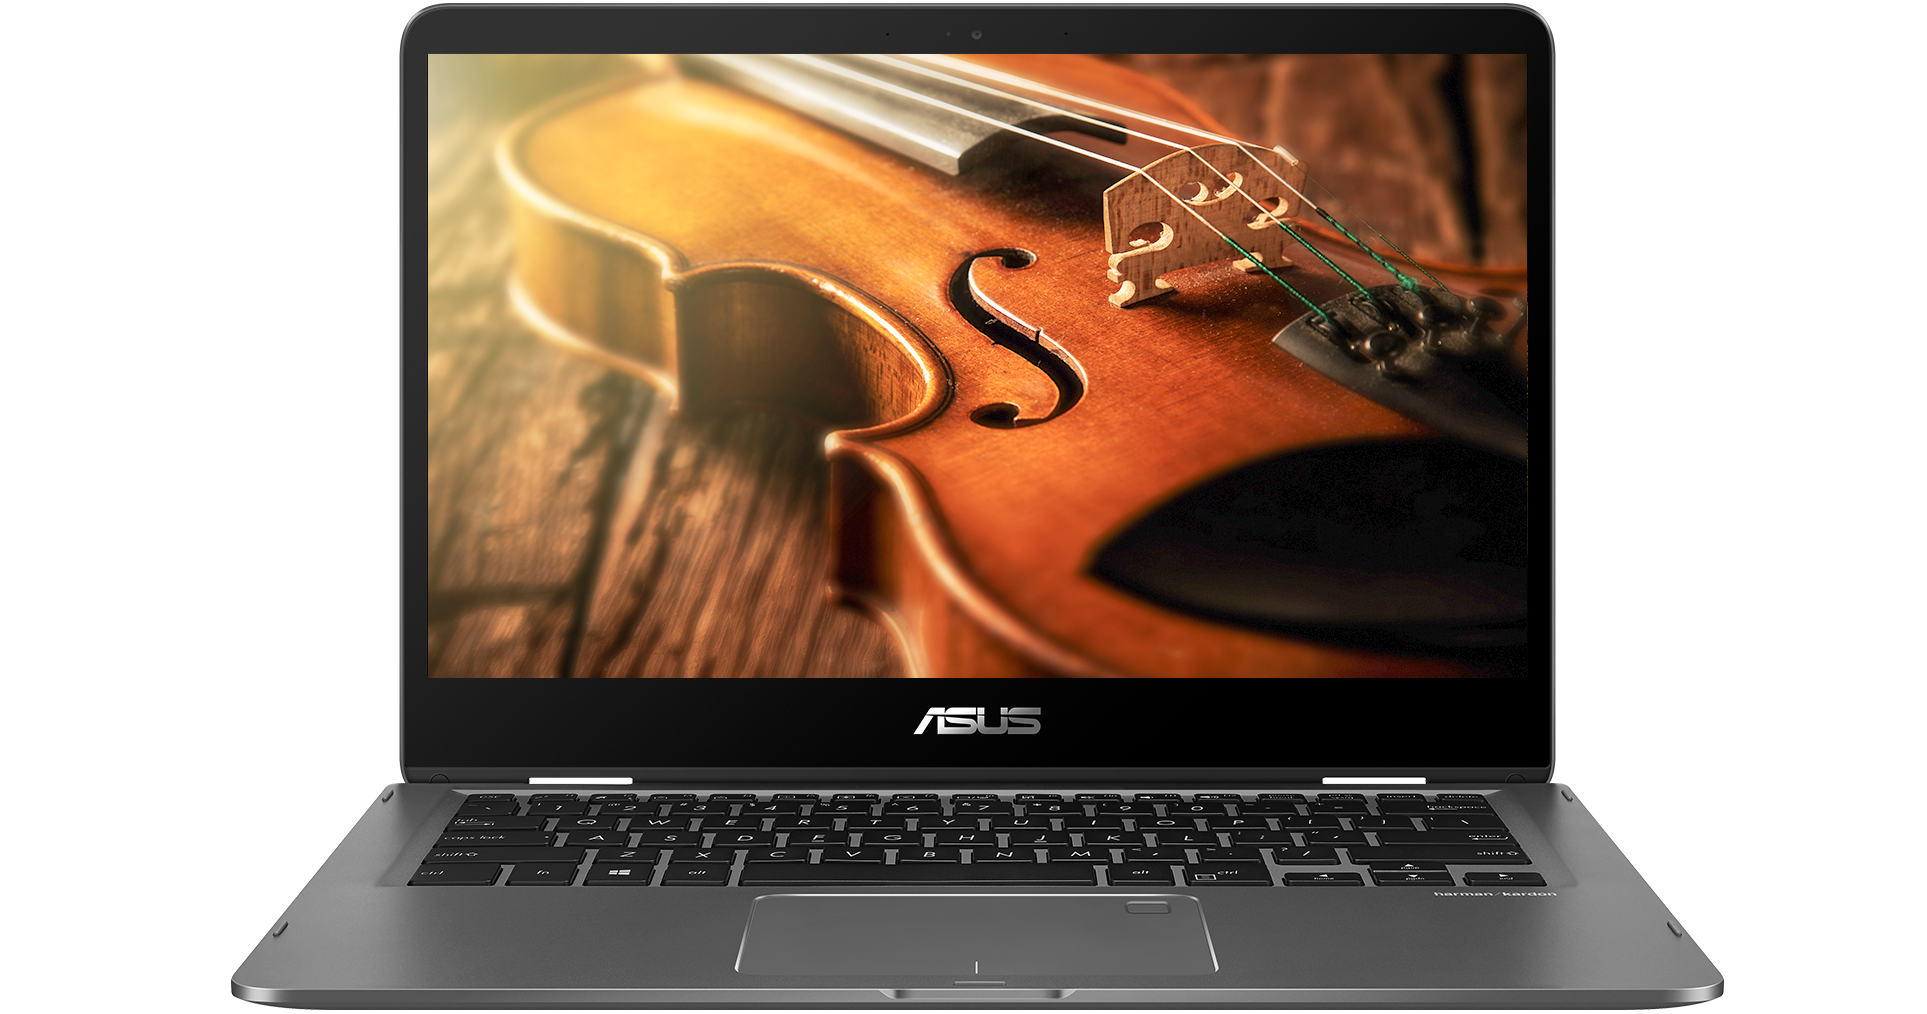 https://www.asus.com/2-in-1-PCs/ASUS-ZenBook-Flip-14-UX461UN/Features/websites/global/products/vgnTGCgOM0W5mQ2t/V1/images/desktop/img-audio.png